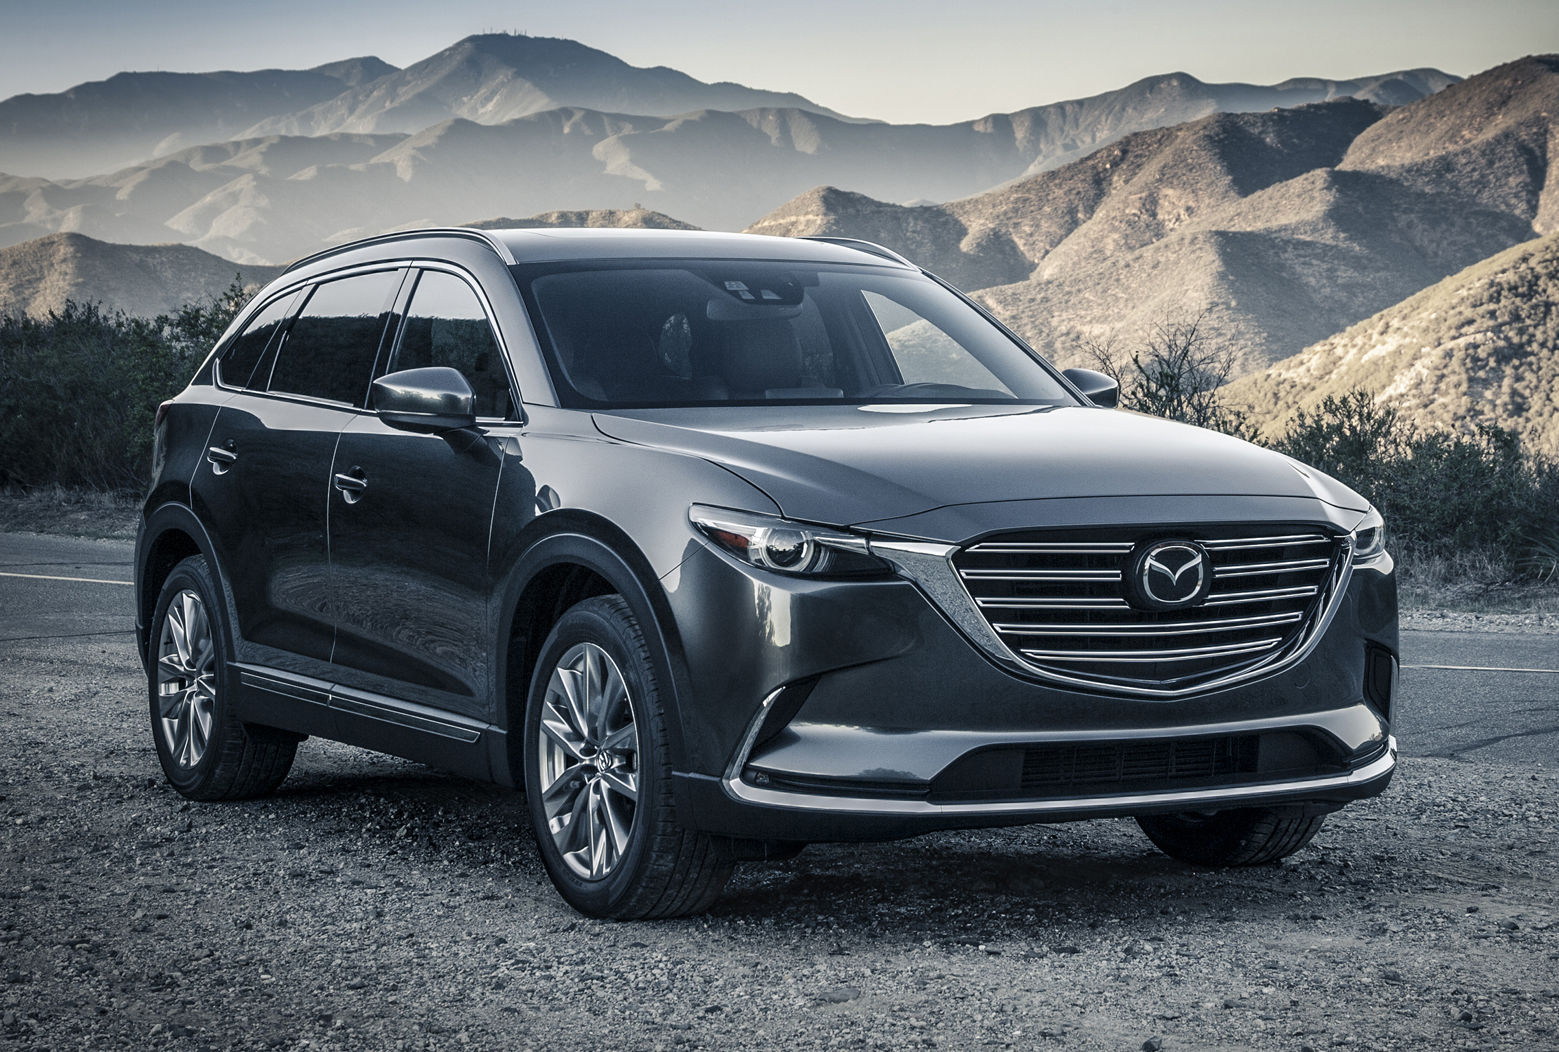 Unveiling the 2016 Mazda CX-9